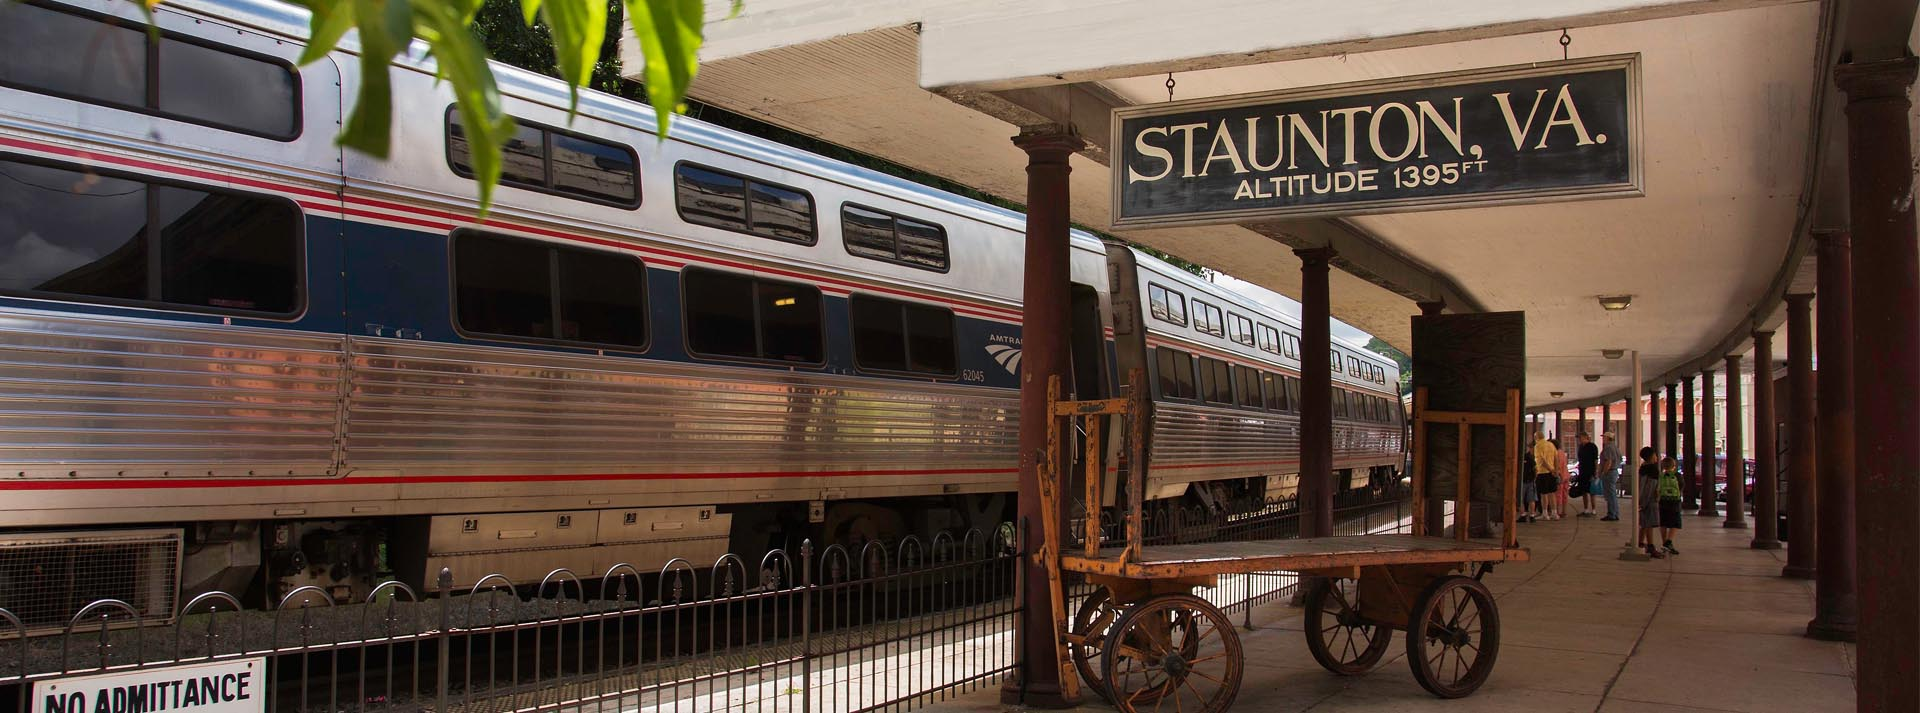 staunton train station and sign